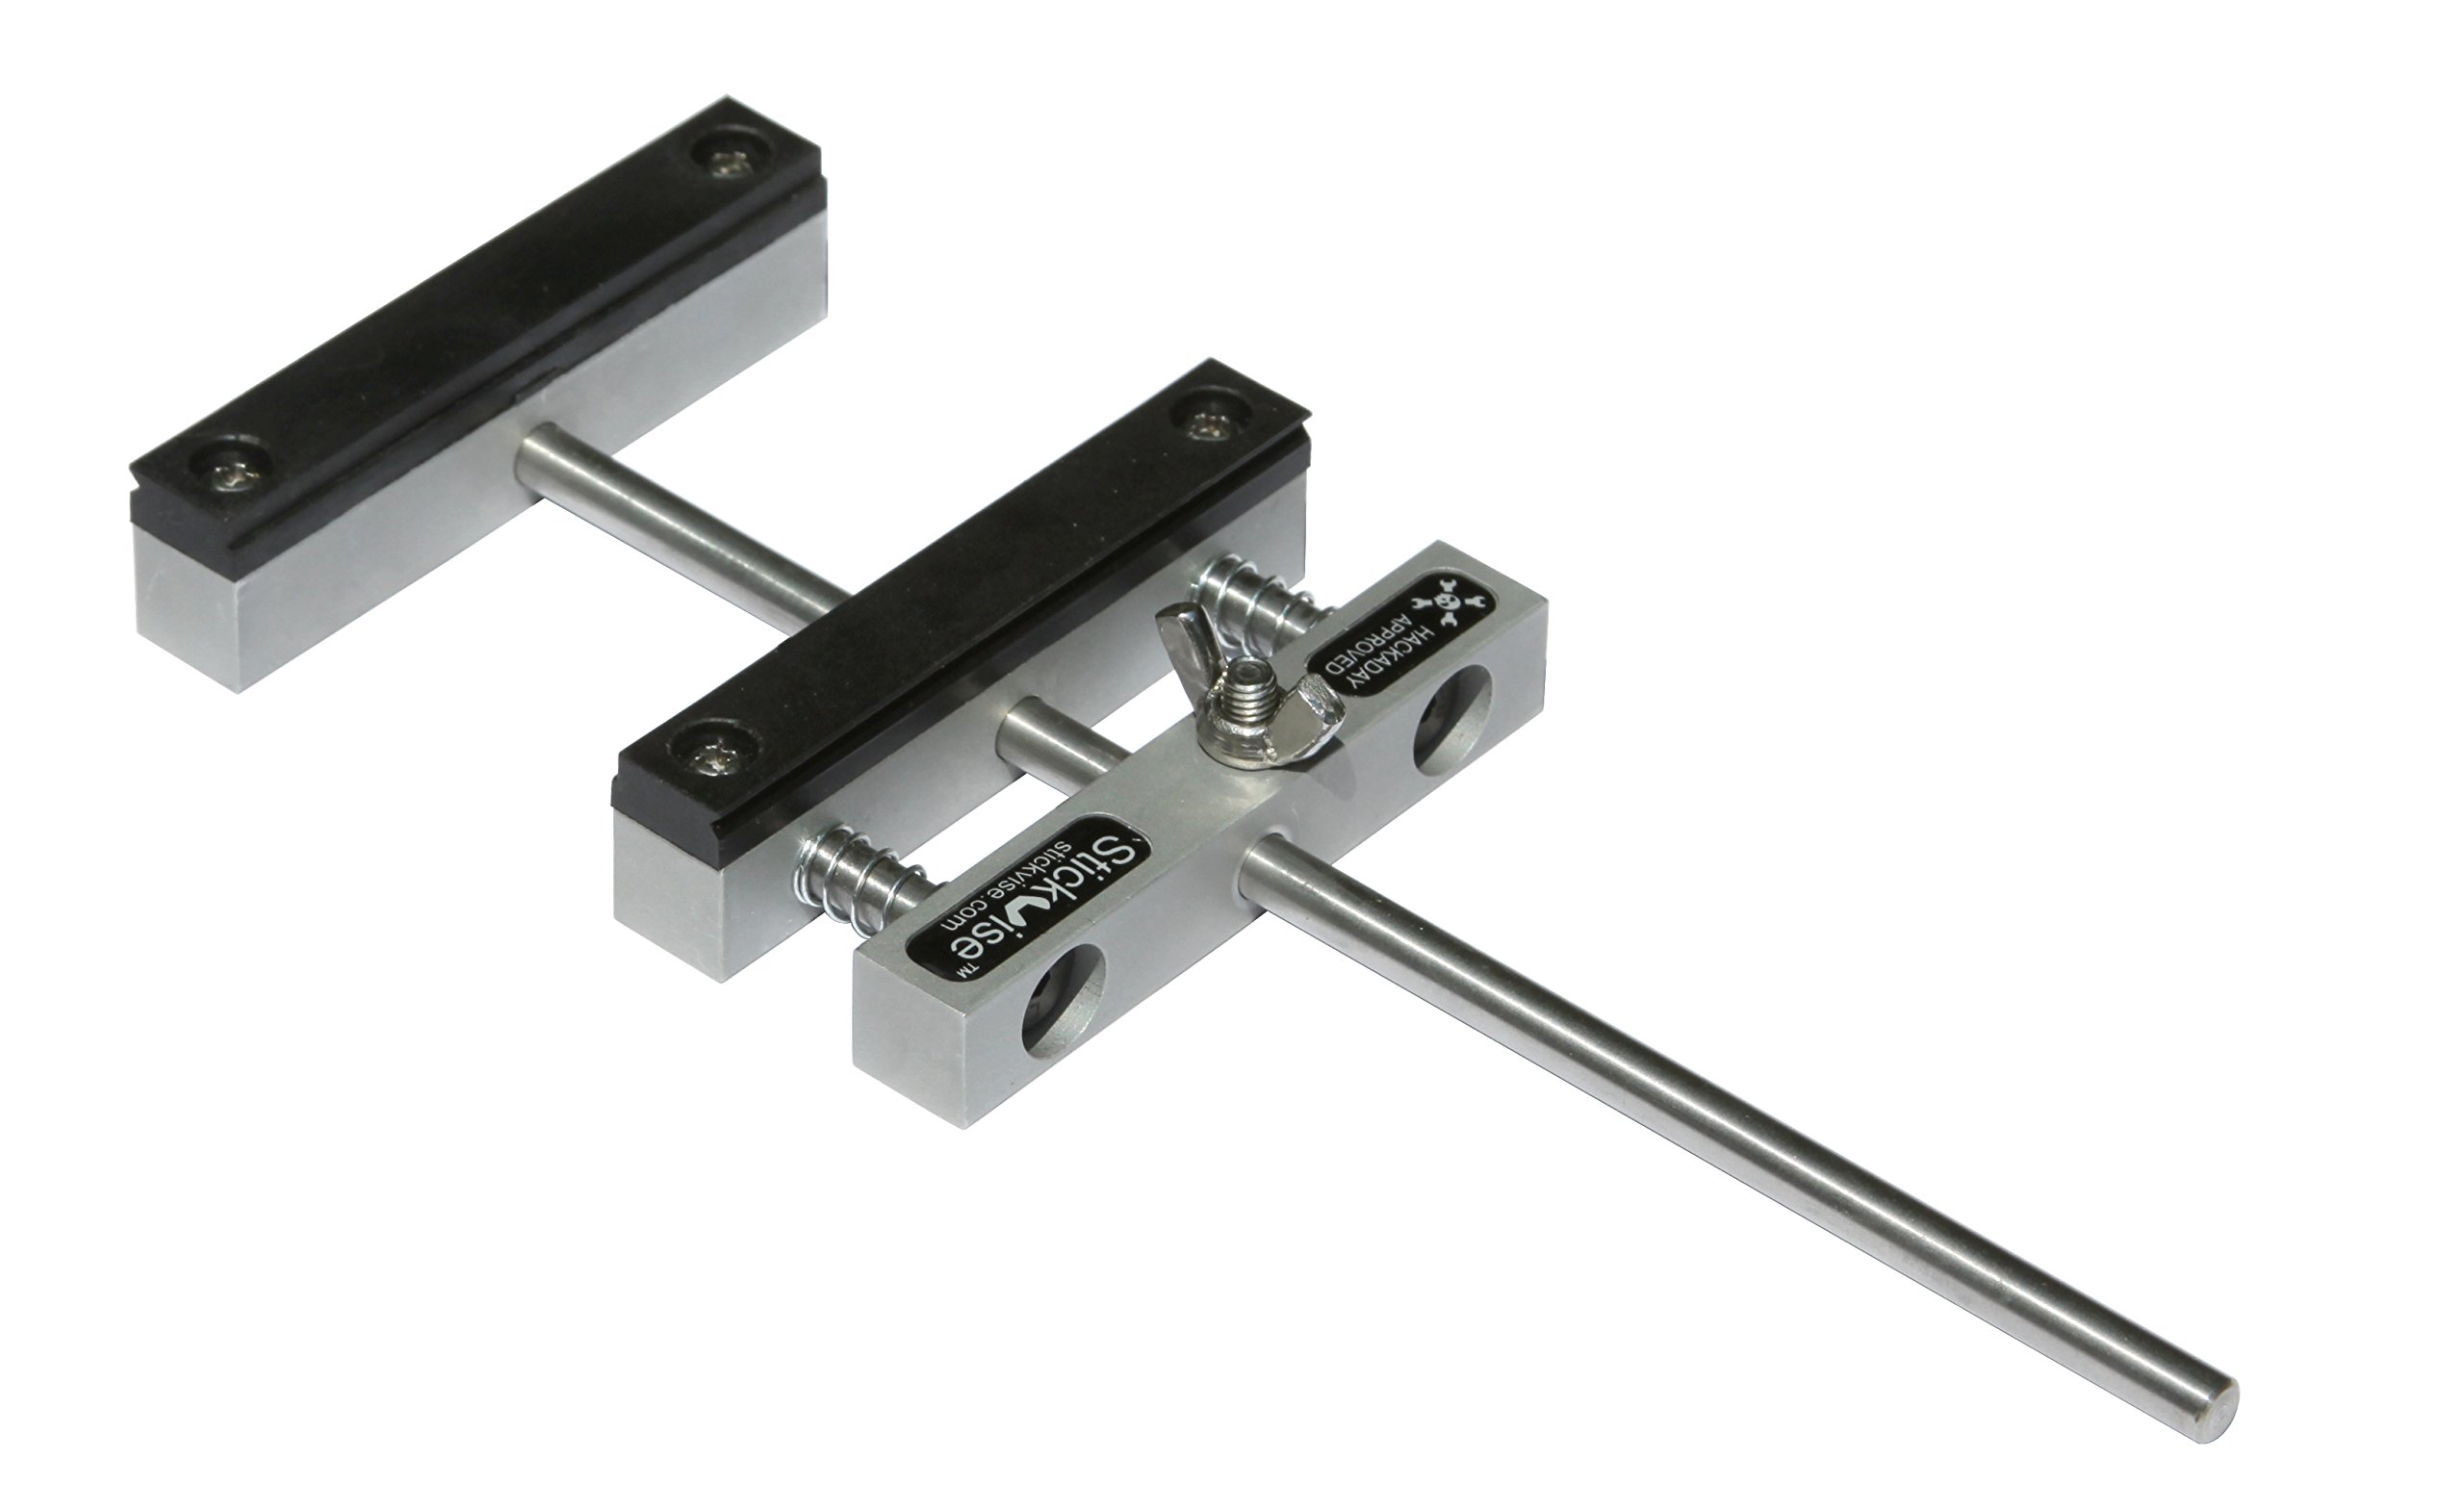 Stickvise PCB Vise with Standard Nylon Jaws by Stickvise